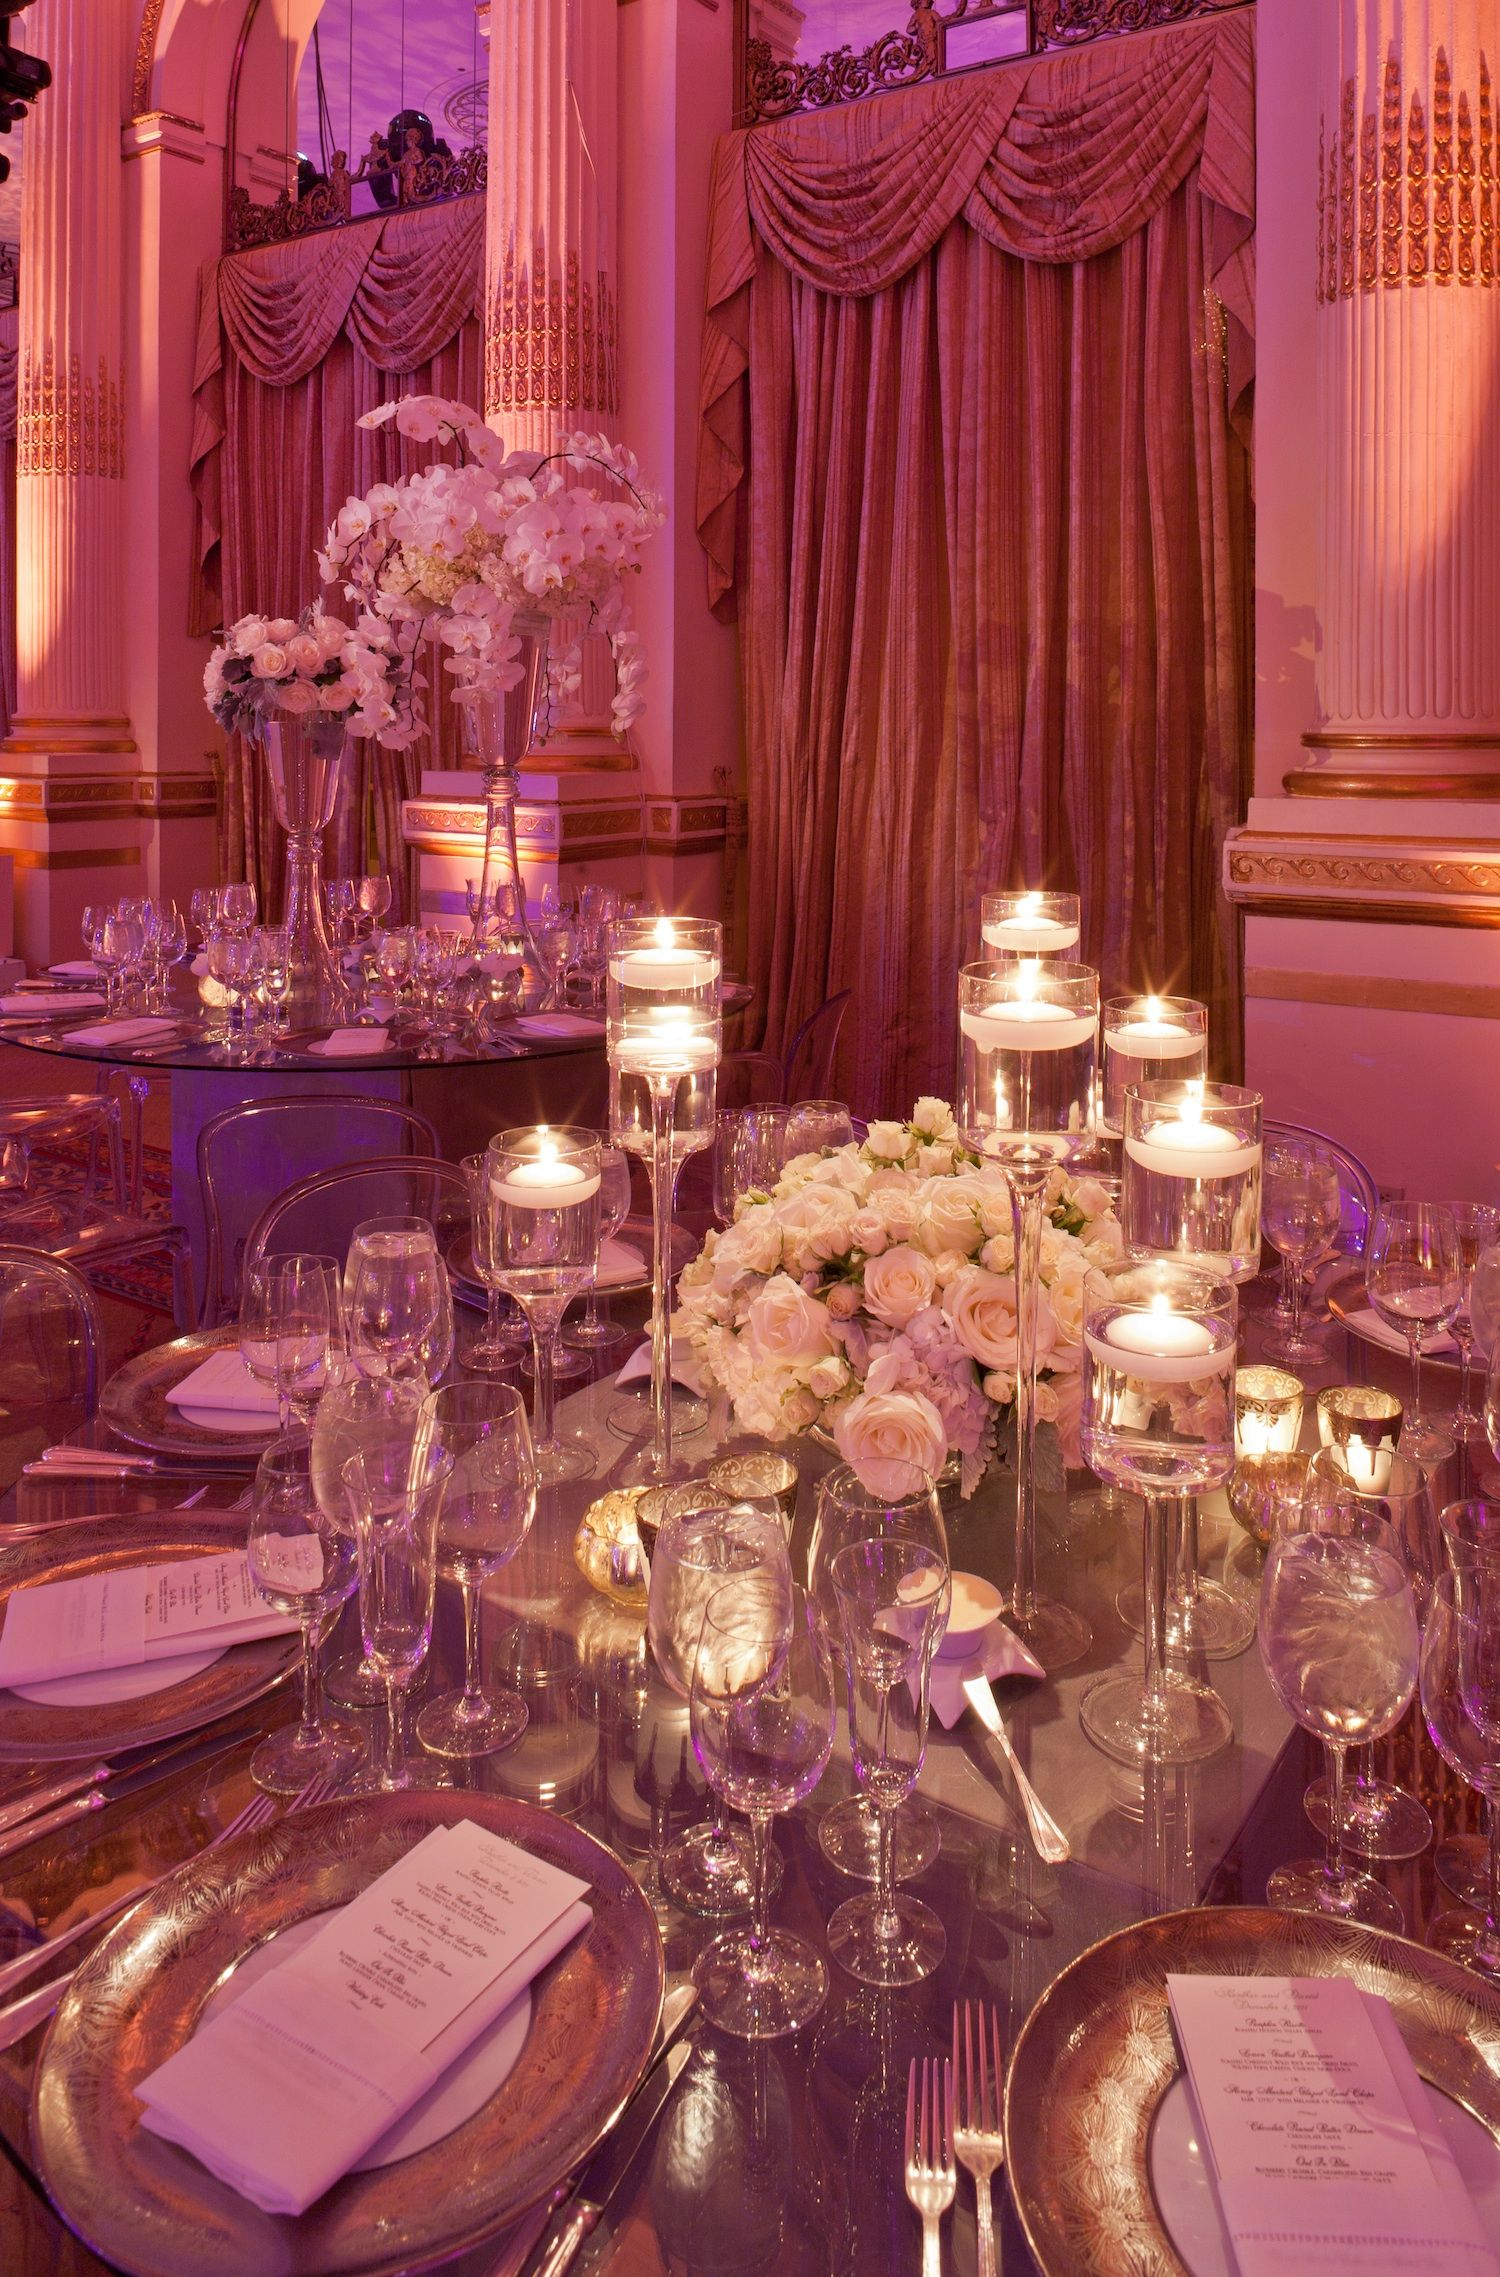 Wedding decoration ideas purple  Opulent New York City Wedding with Violet Lighting  Weddings